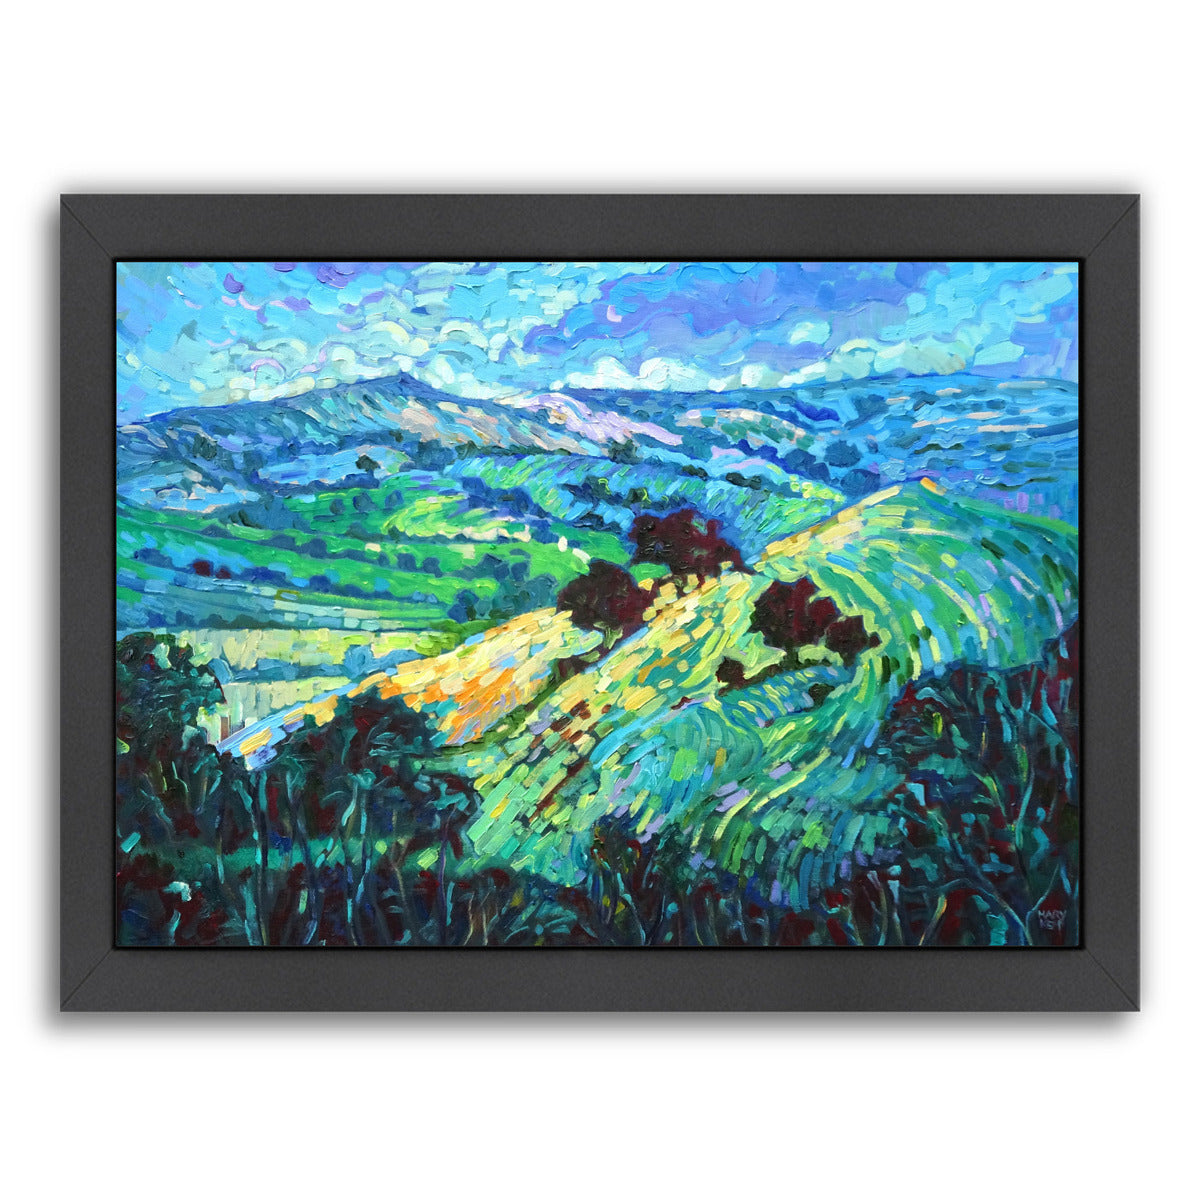 "Blue John, Derbyshire By Mary Kemp - Black Framed Print, Wall Art, Mary Kemp, 8"" x 10"""